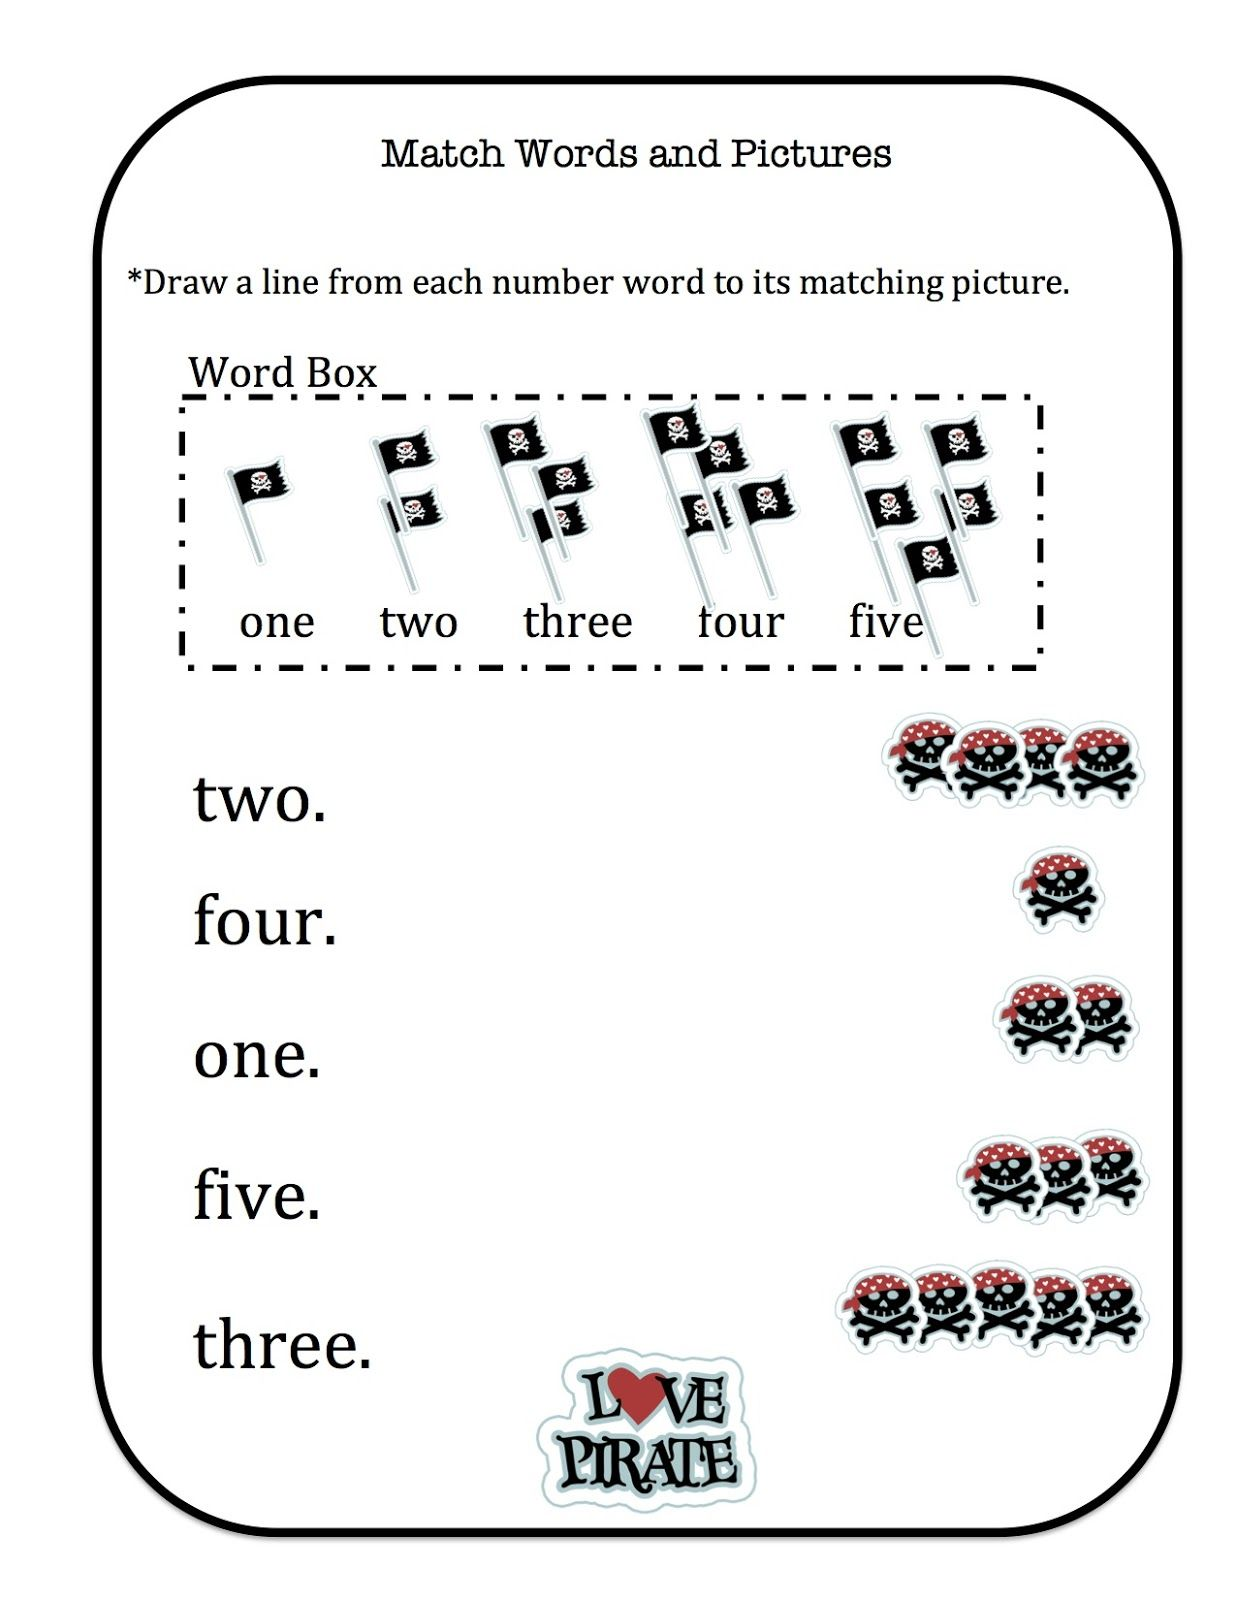 Worksheets Pirate Worksheets pirate worksheets yahoo image search results its results